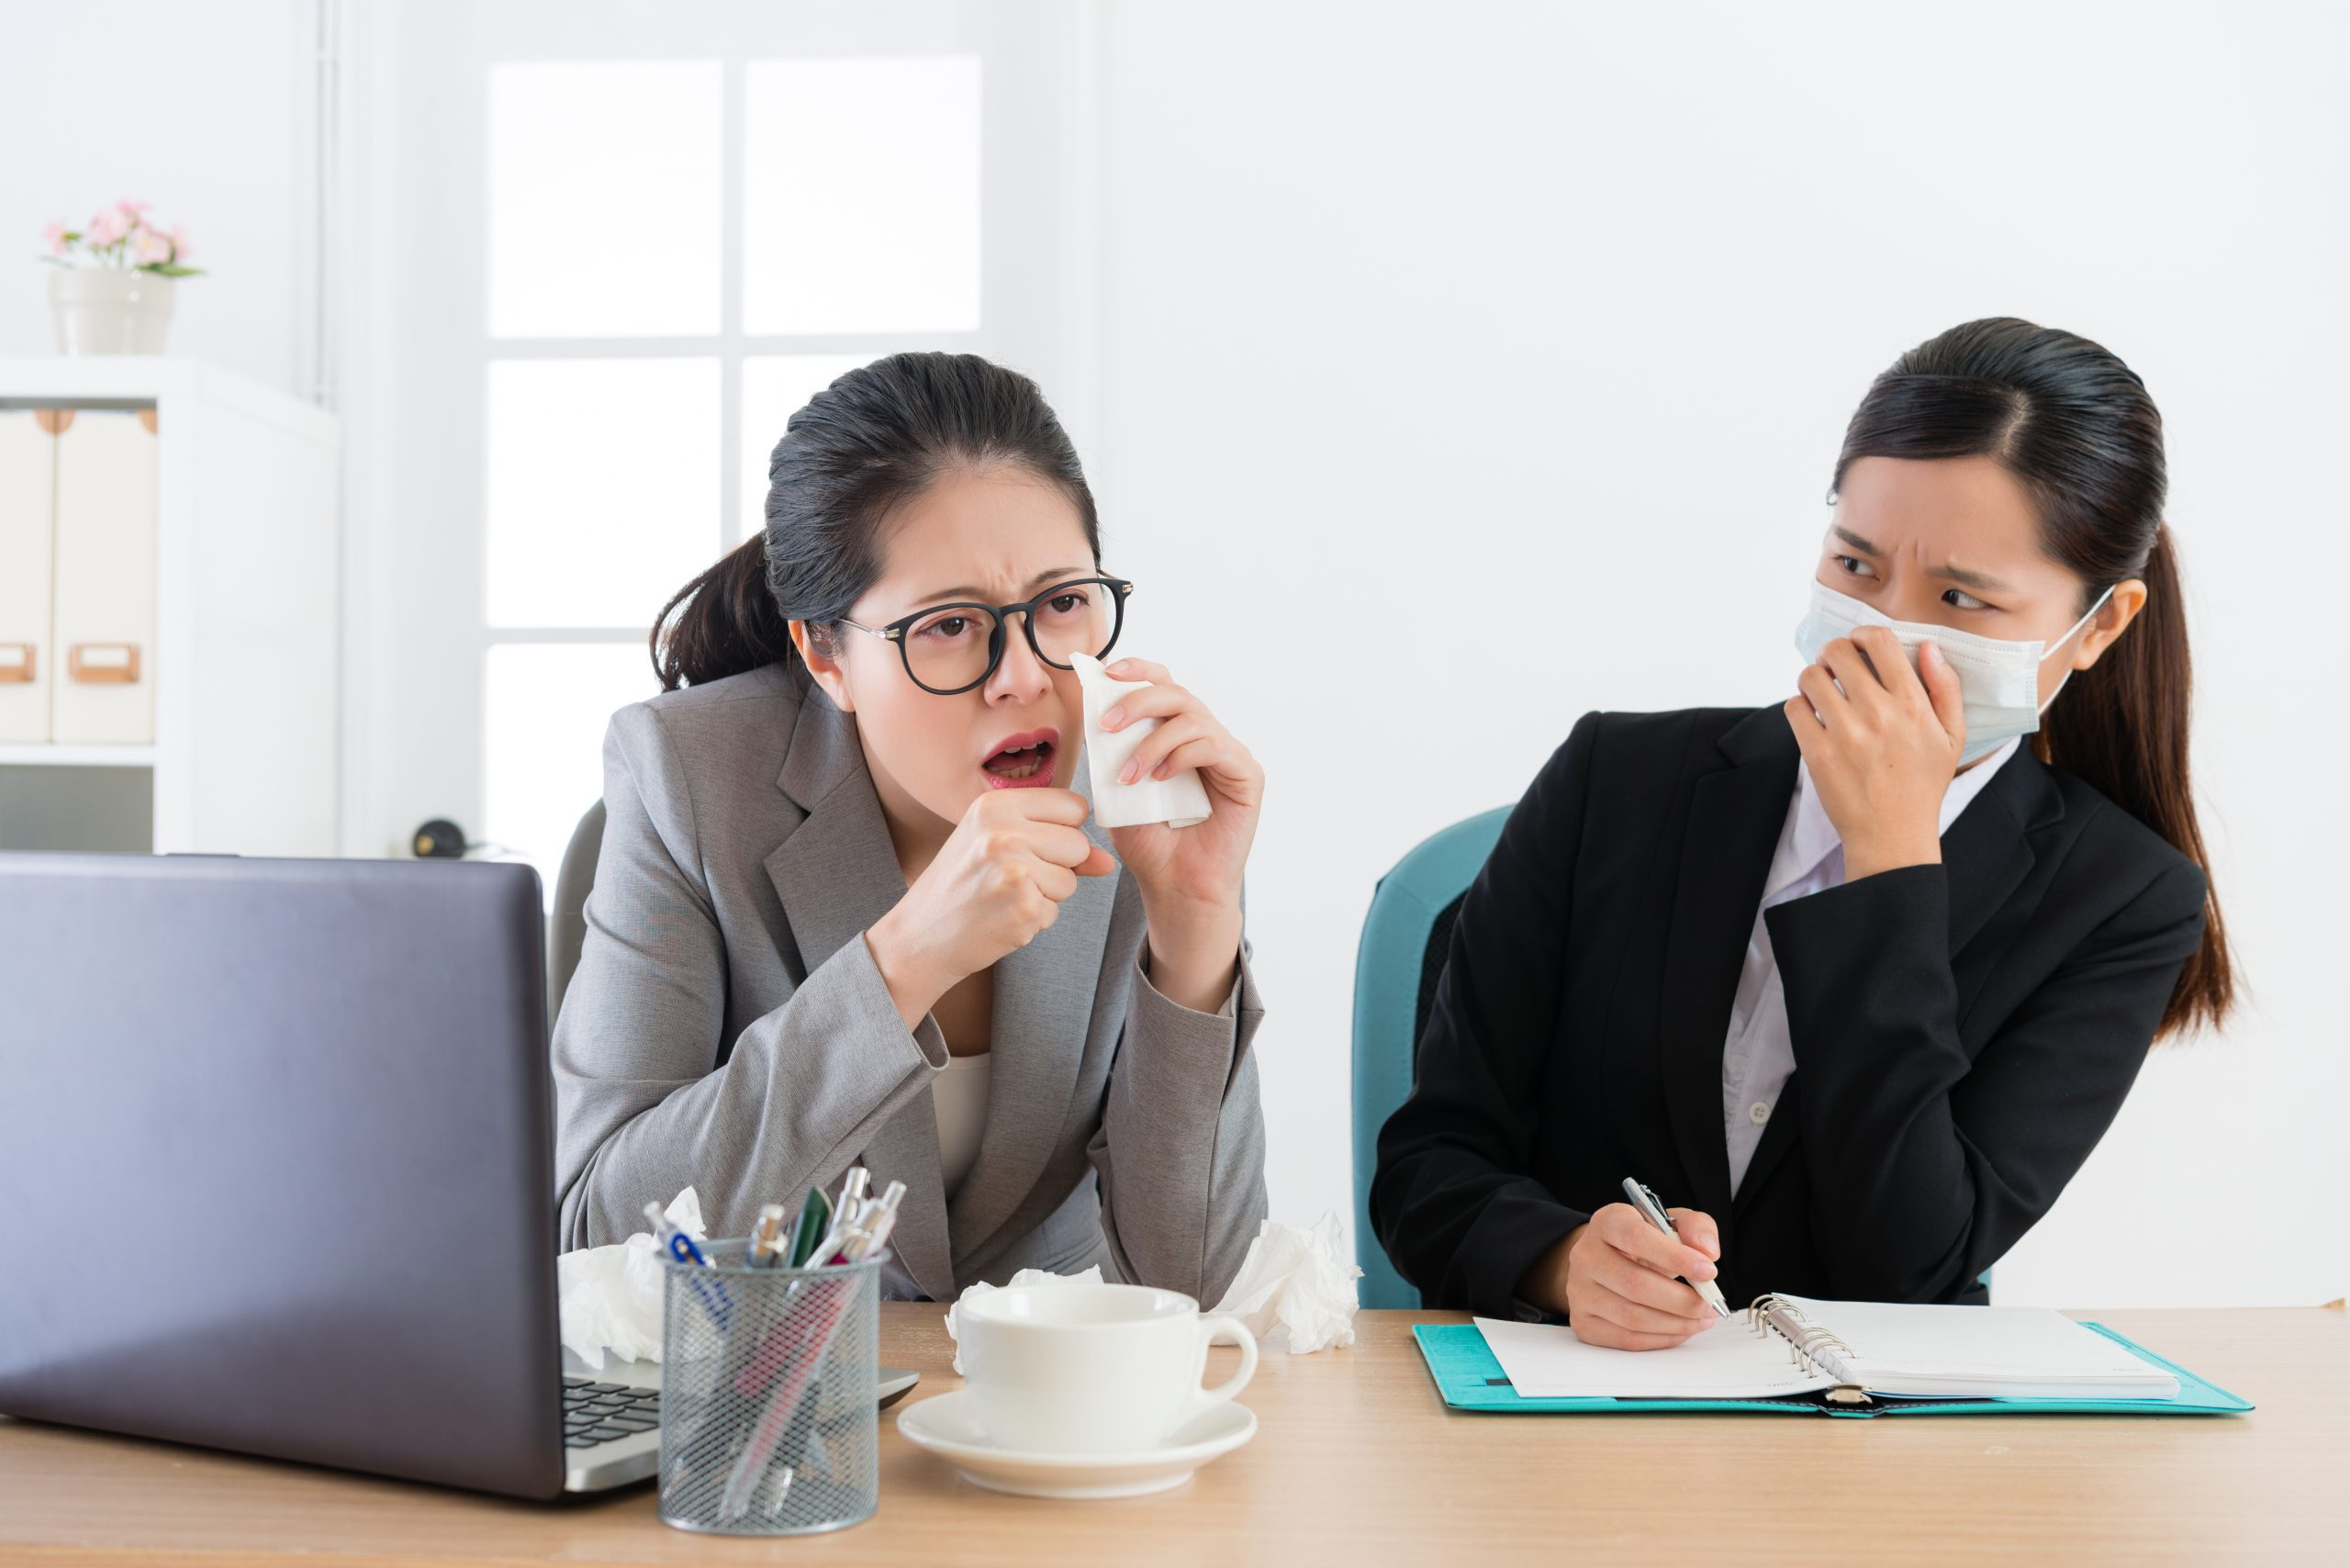 Could Coughing on Someone When You Have COVID-19 Be Assault in TX?